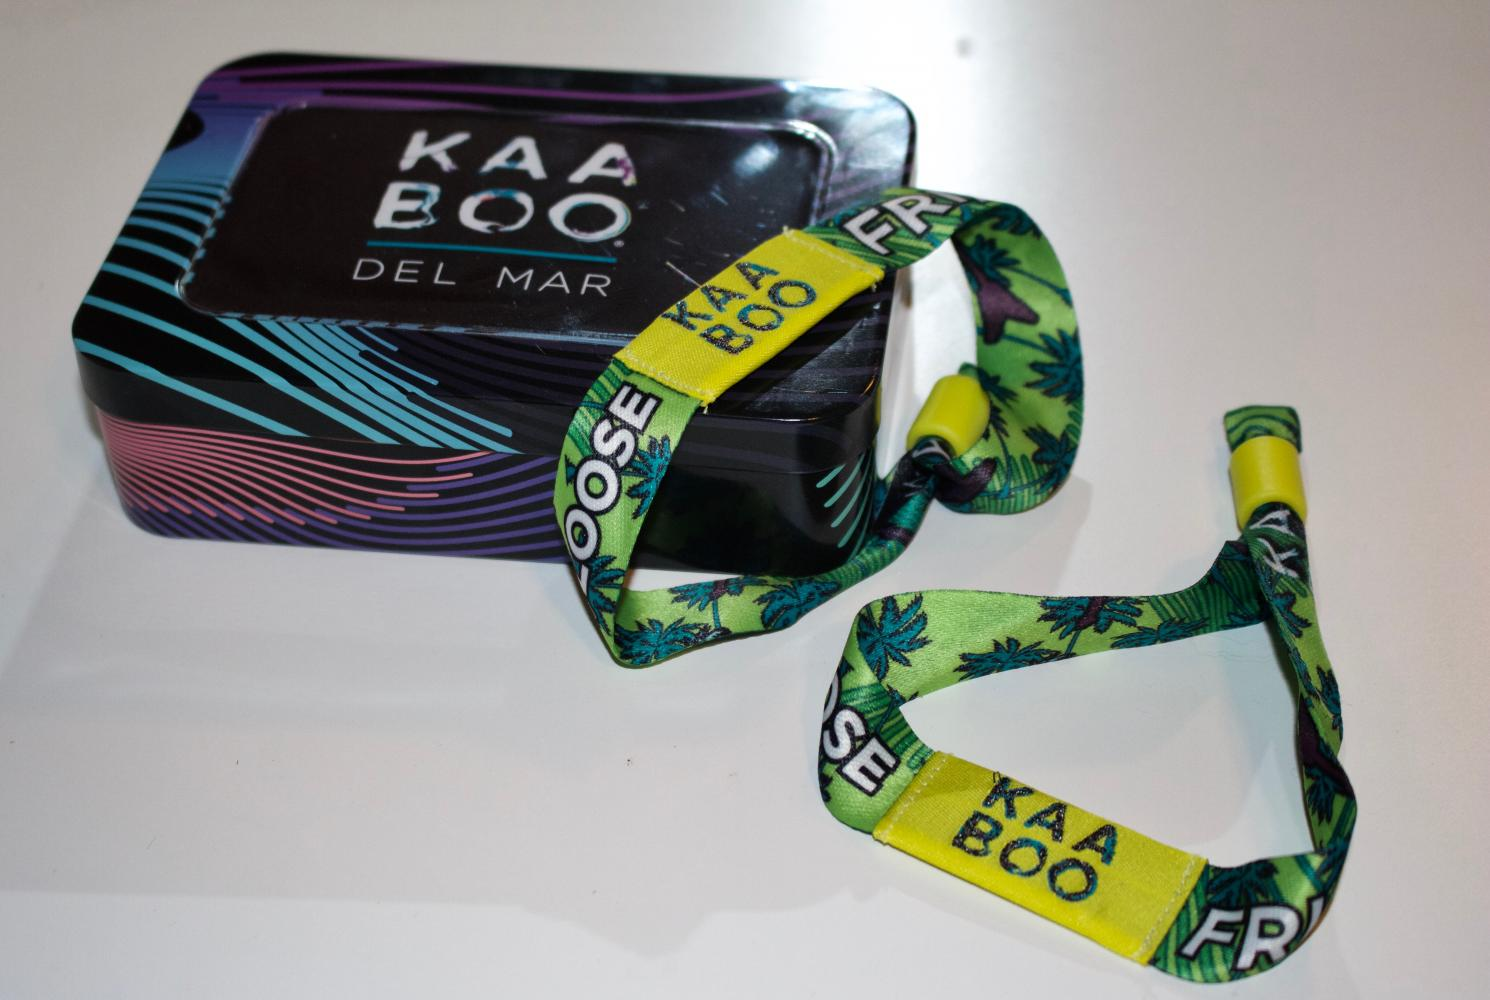 No paper ticket needed, you will receive your personal wristband in the mail. KAABOO also introduces for the first time cashless pay when you link your festival wristband to your credit or debit card.